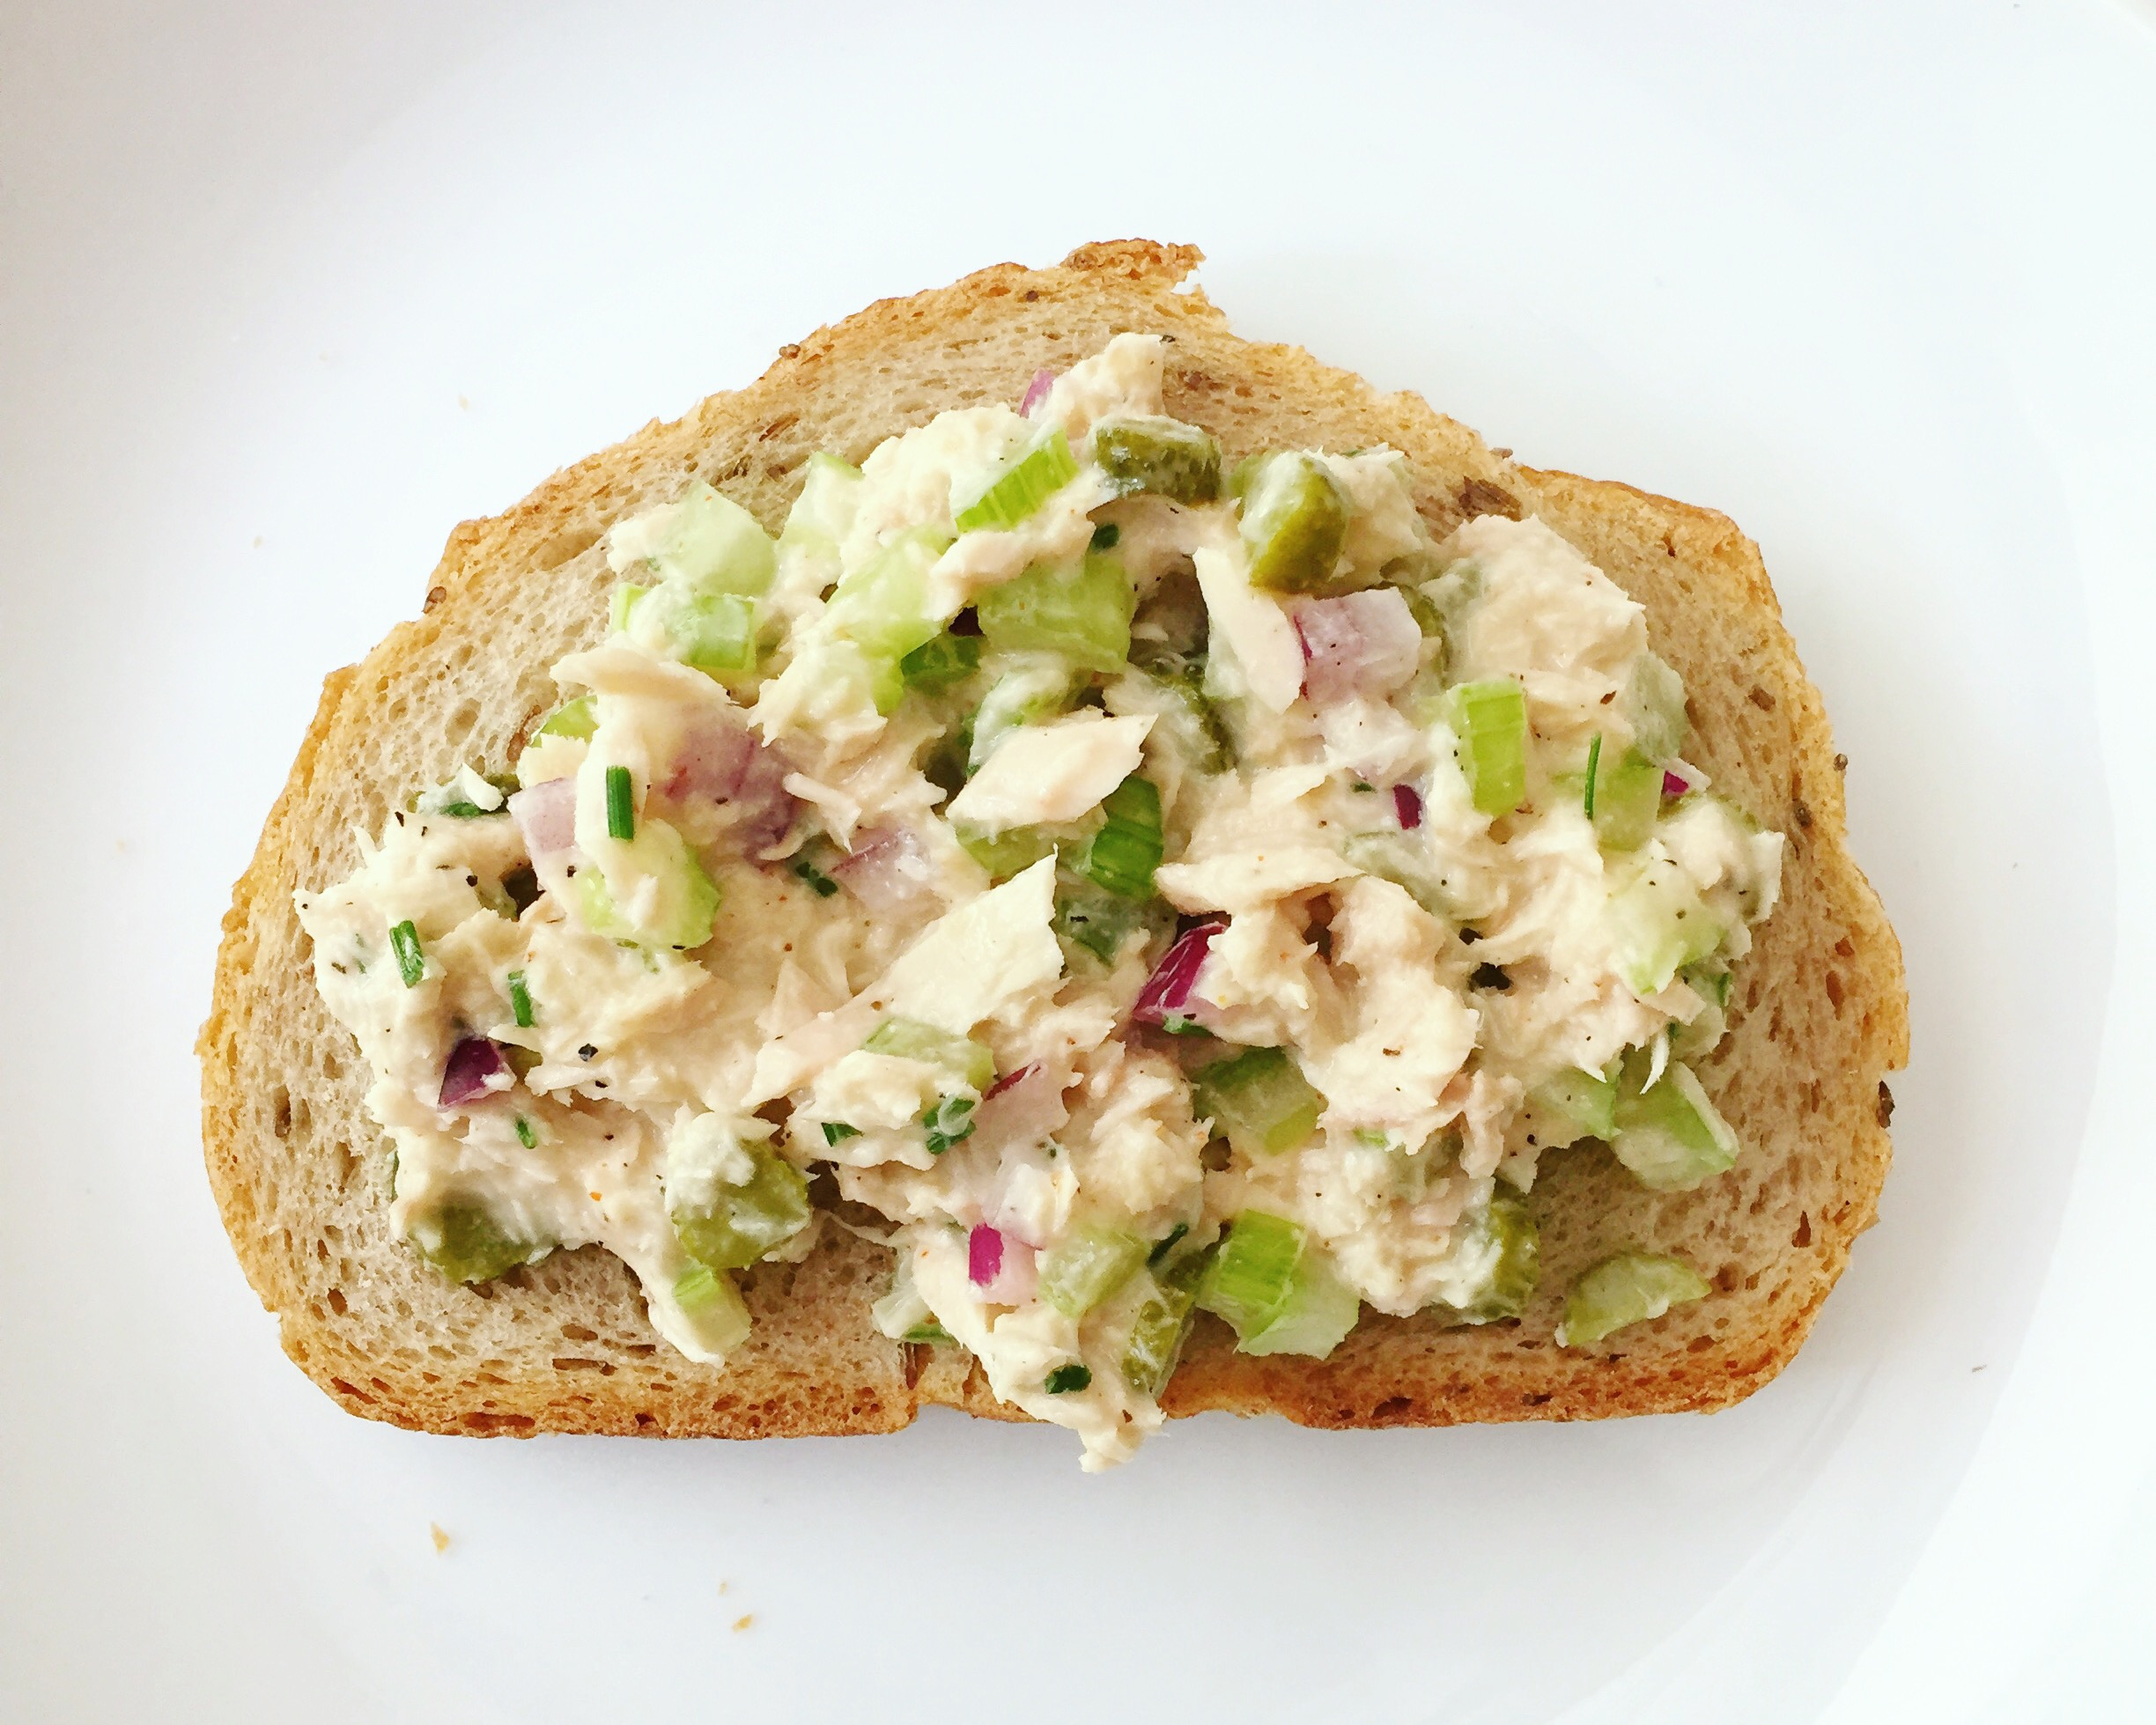 Tuna salad on organic Jewish rye from Whole Foods.